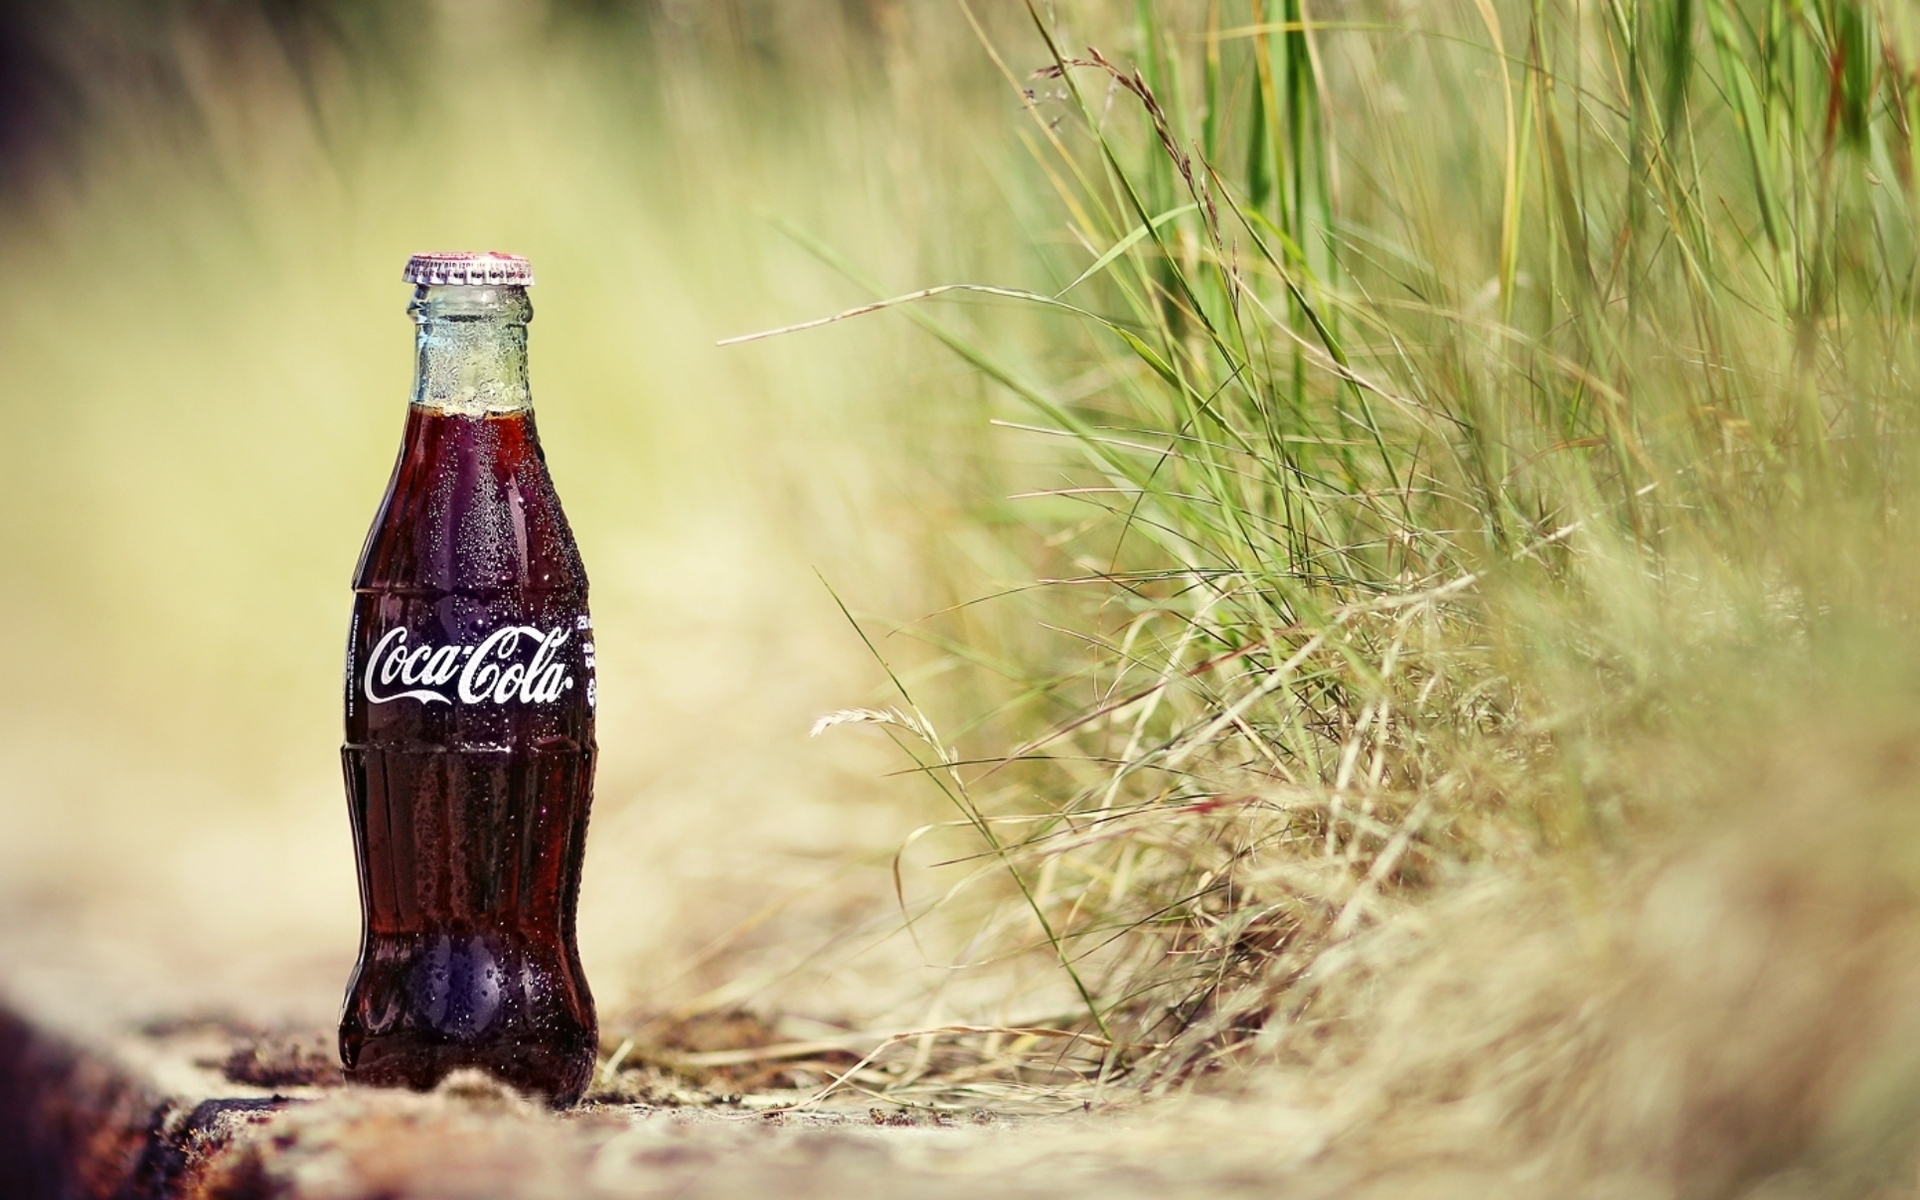 39482 download wallpaper Brands, Coca-Cola screensavers and pictures for free